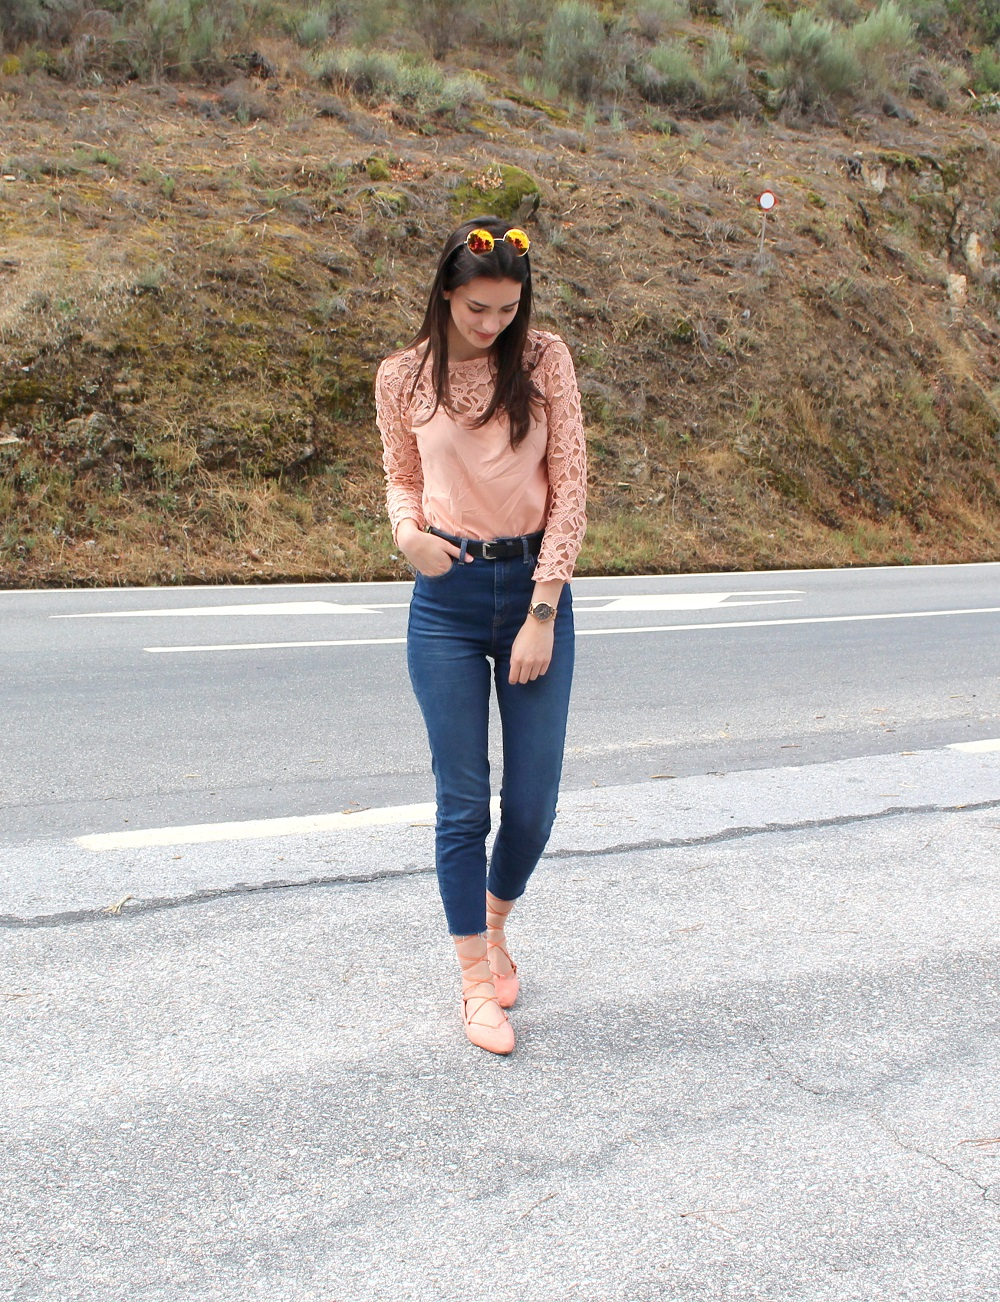 peexo-fashion-blogger-wearing-lace-top-and-topshop-binx-jeans-and-lace-up-flats-and-rose-gold-sunglasses